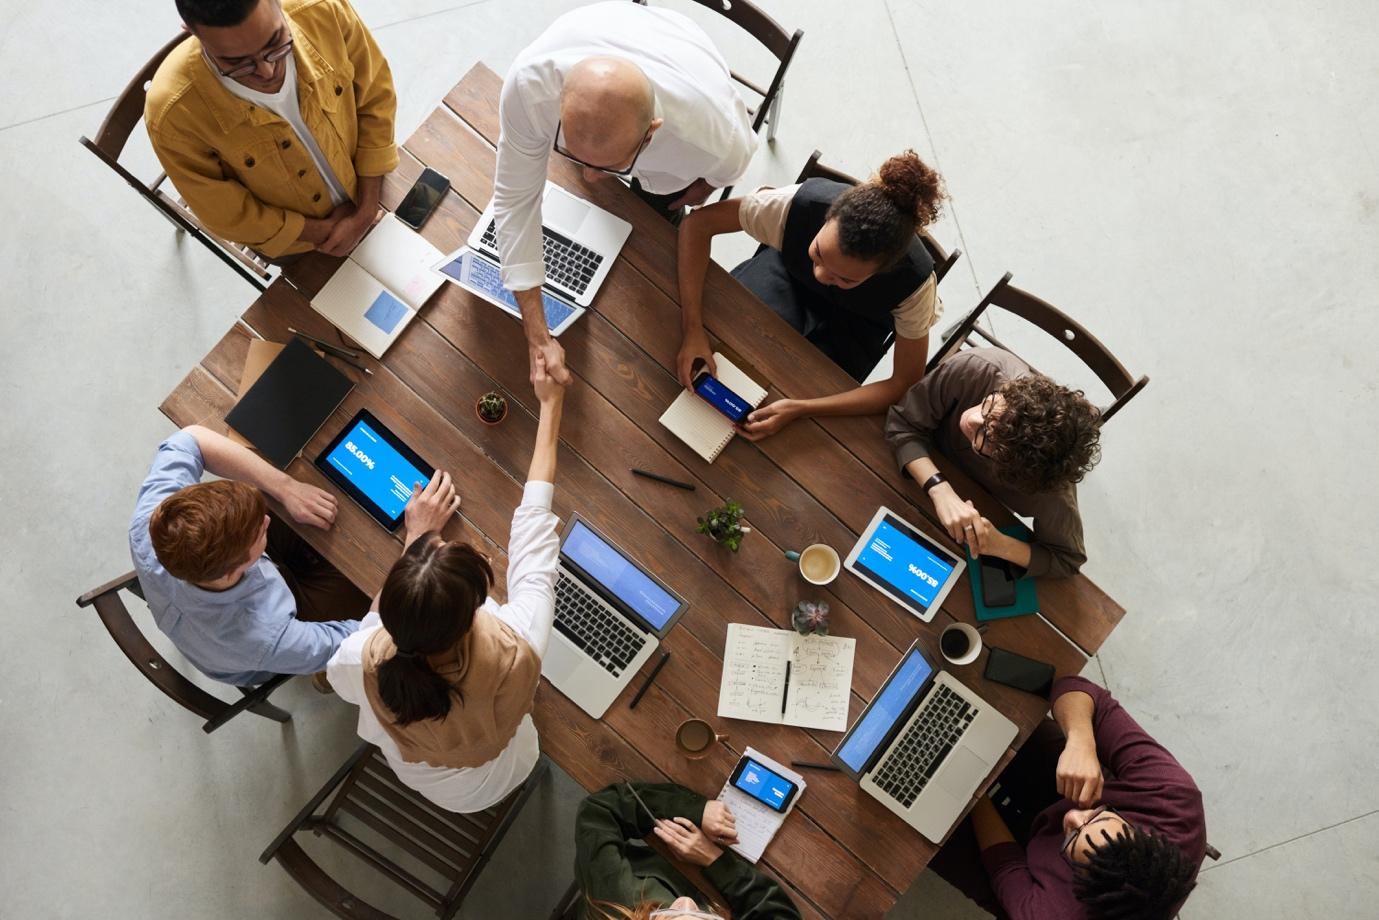 A group of people sitting around a table with laptops  Description automatically generated with medium confidence